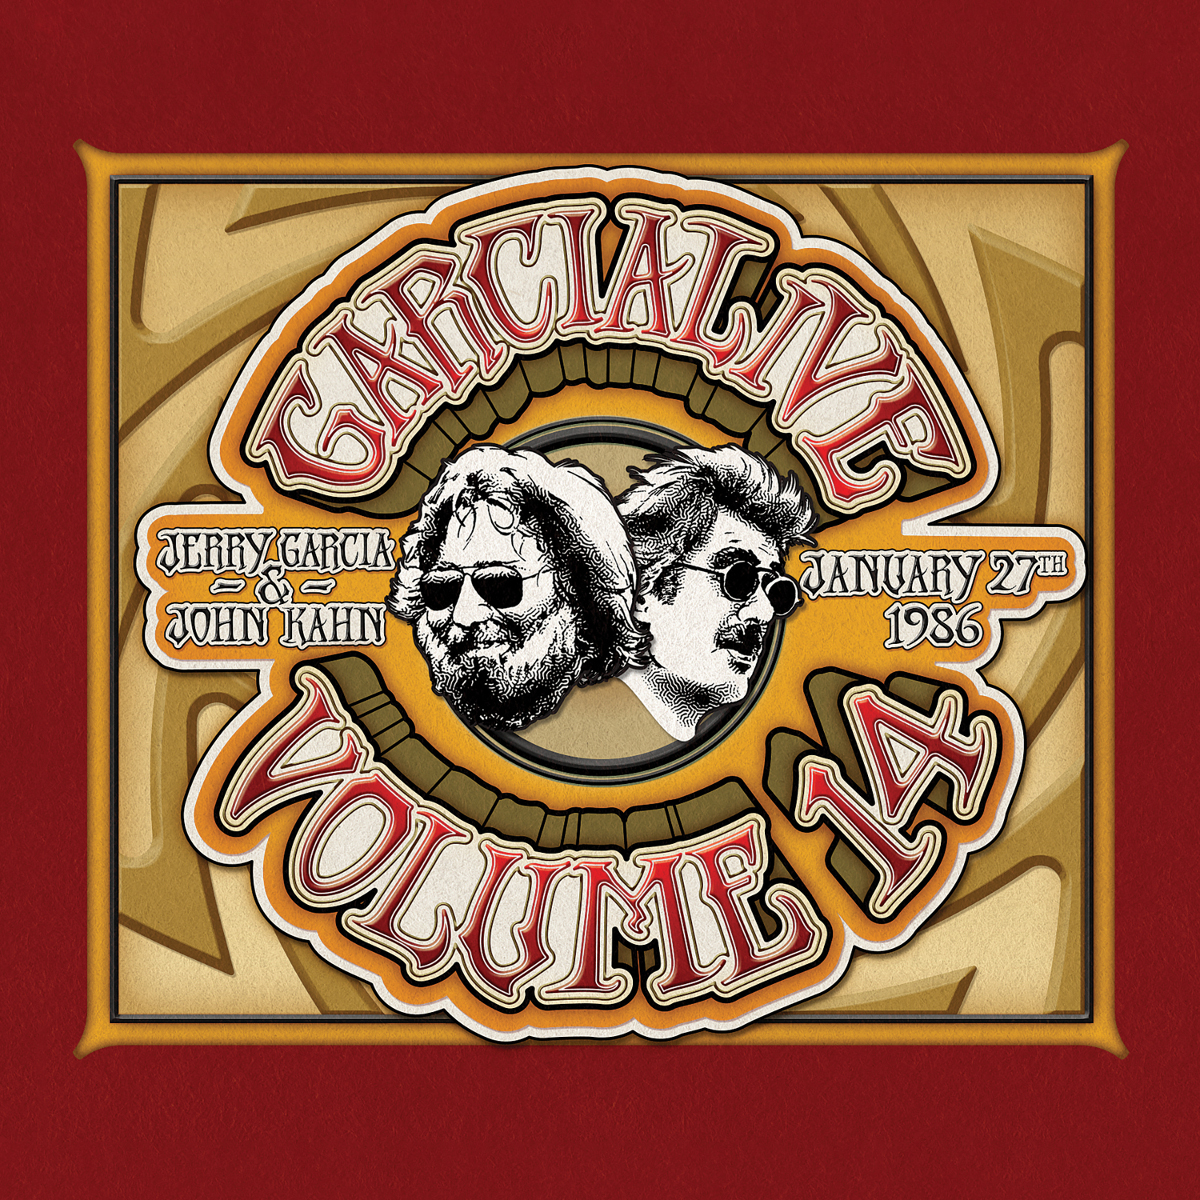 Jerry Garcia & John Kahn - GarciaLive Volume 14: 01/27/86 CD or Digital Download